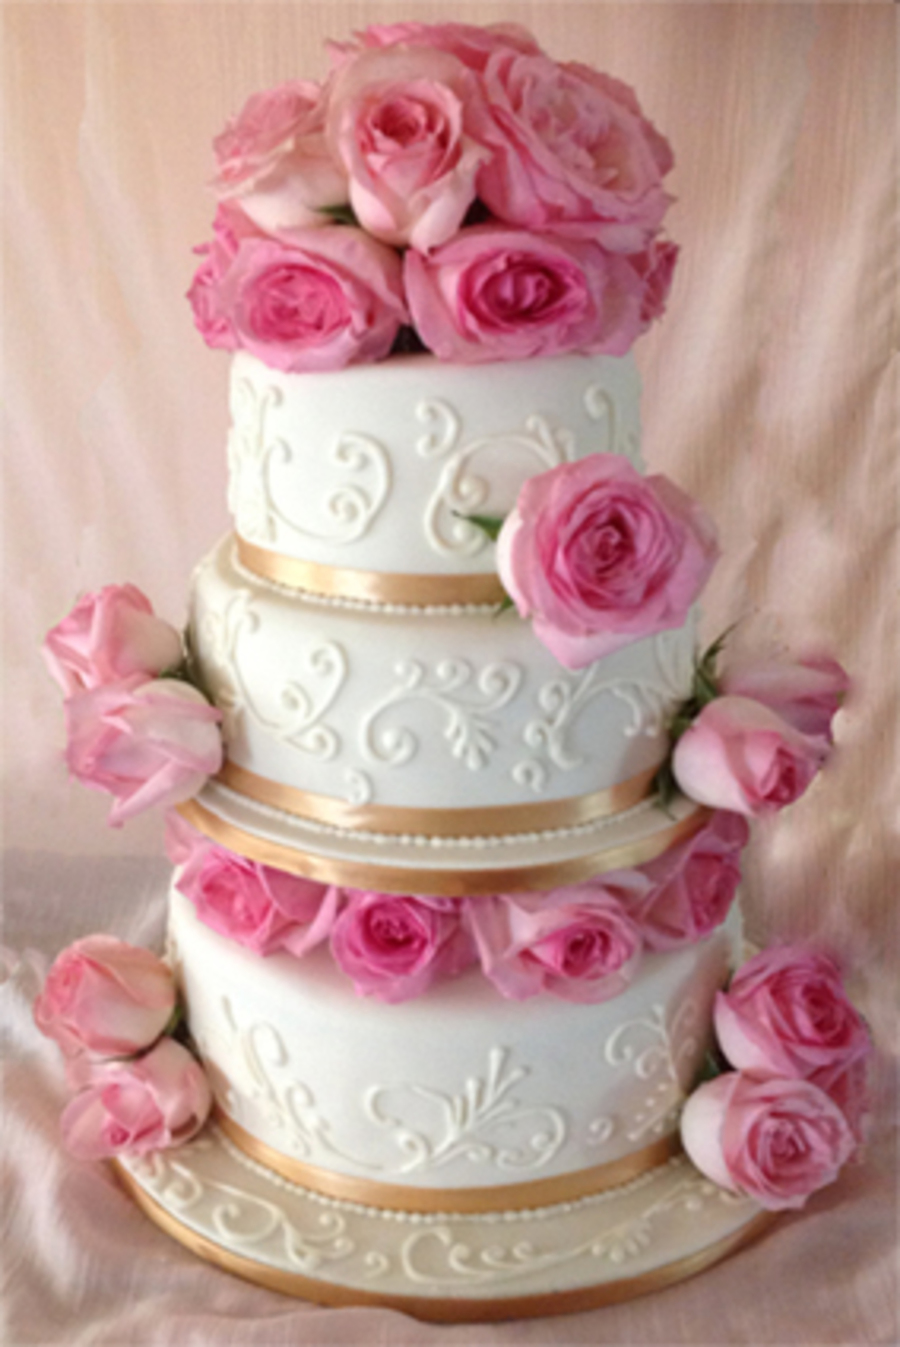 Ivory Wedding Cake With Blush Pink Roses - CakeCentral.com